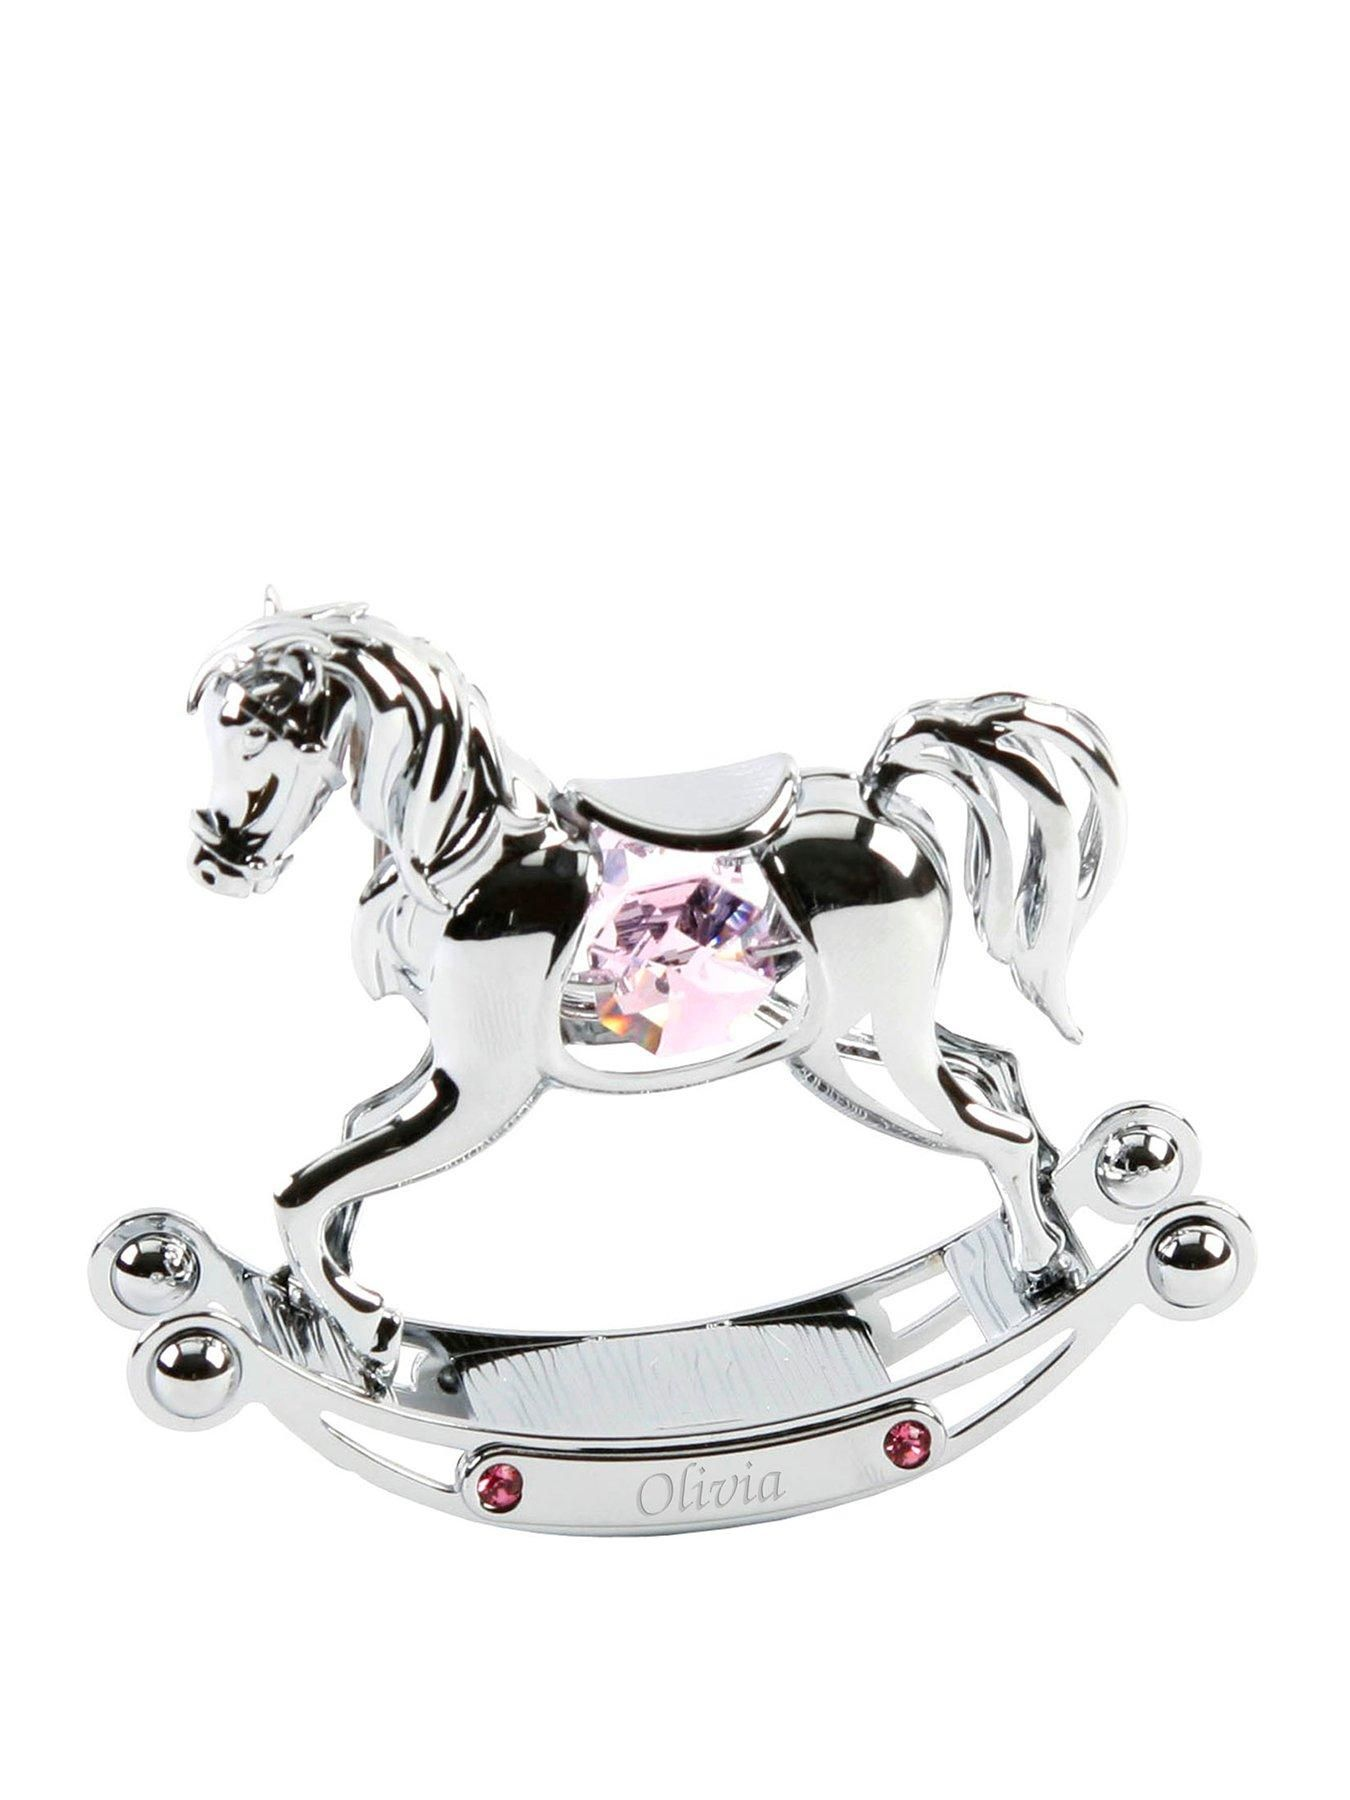 Horse Black Plated Metal Figurine with Swarovski Crystals